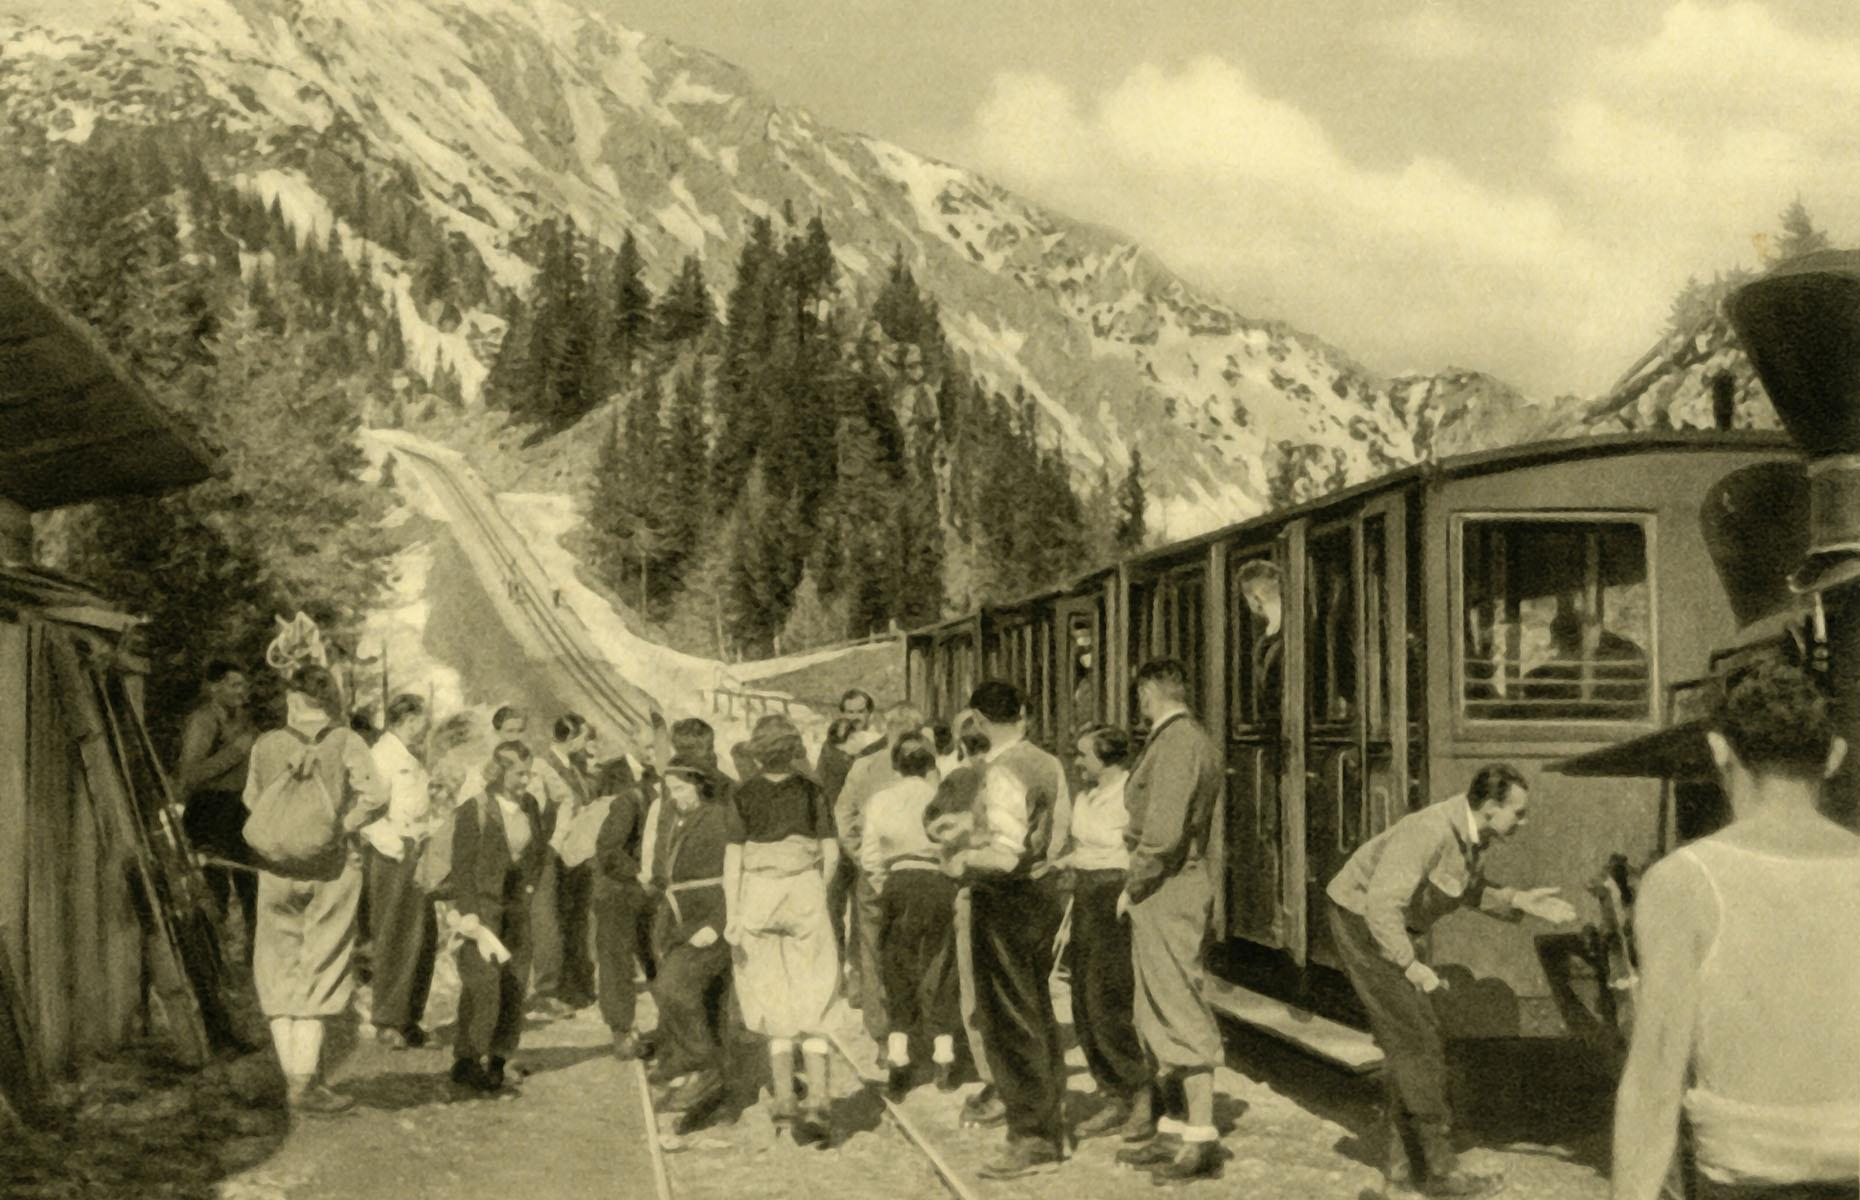 Slide 19 of 32: When tourism skyrocketed in the second half of the 19th century and areas around Vienna became popular with travelers from all across Europe, the mountainous Schneeberg region emerged as a favorite summer resort for the wealthy. Here are a group of hikers disembark the Schneeberg Railway at Baumgartnerhaus Station in 1935.